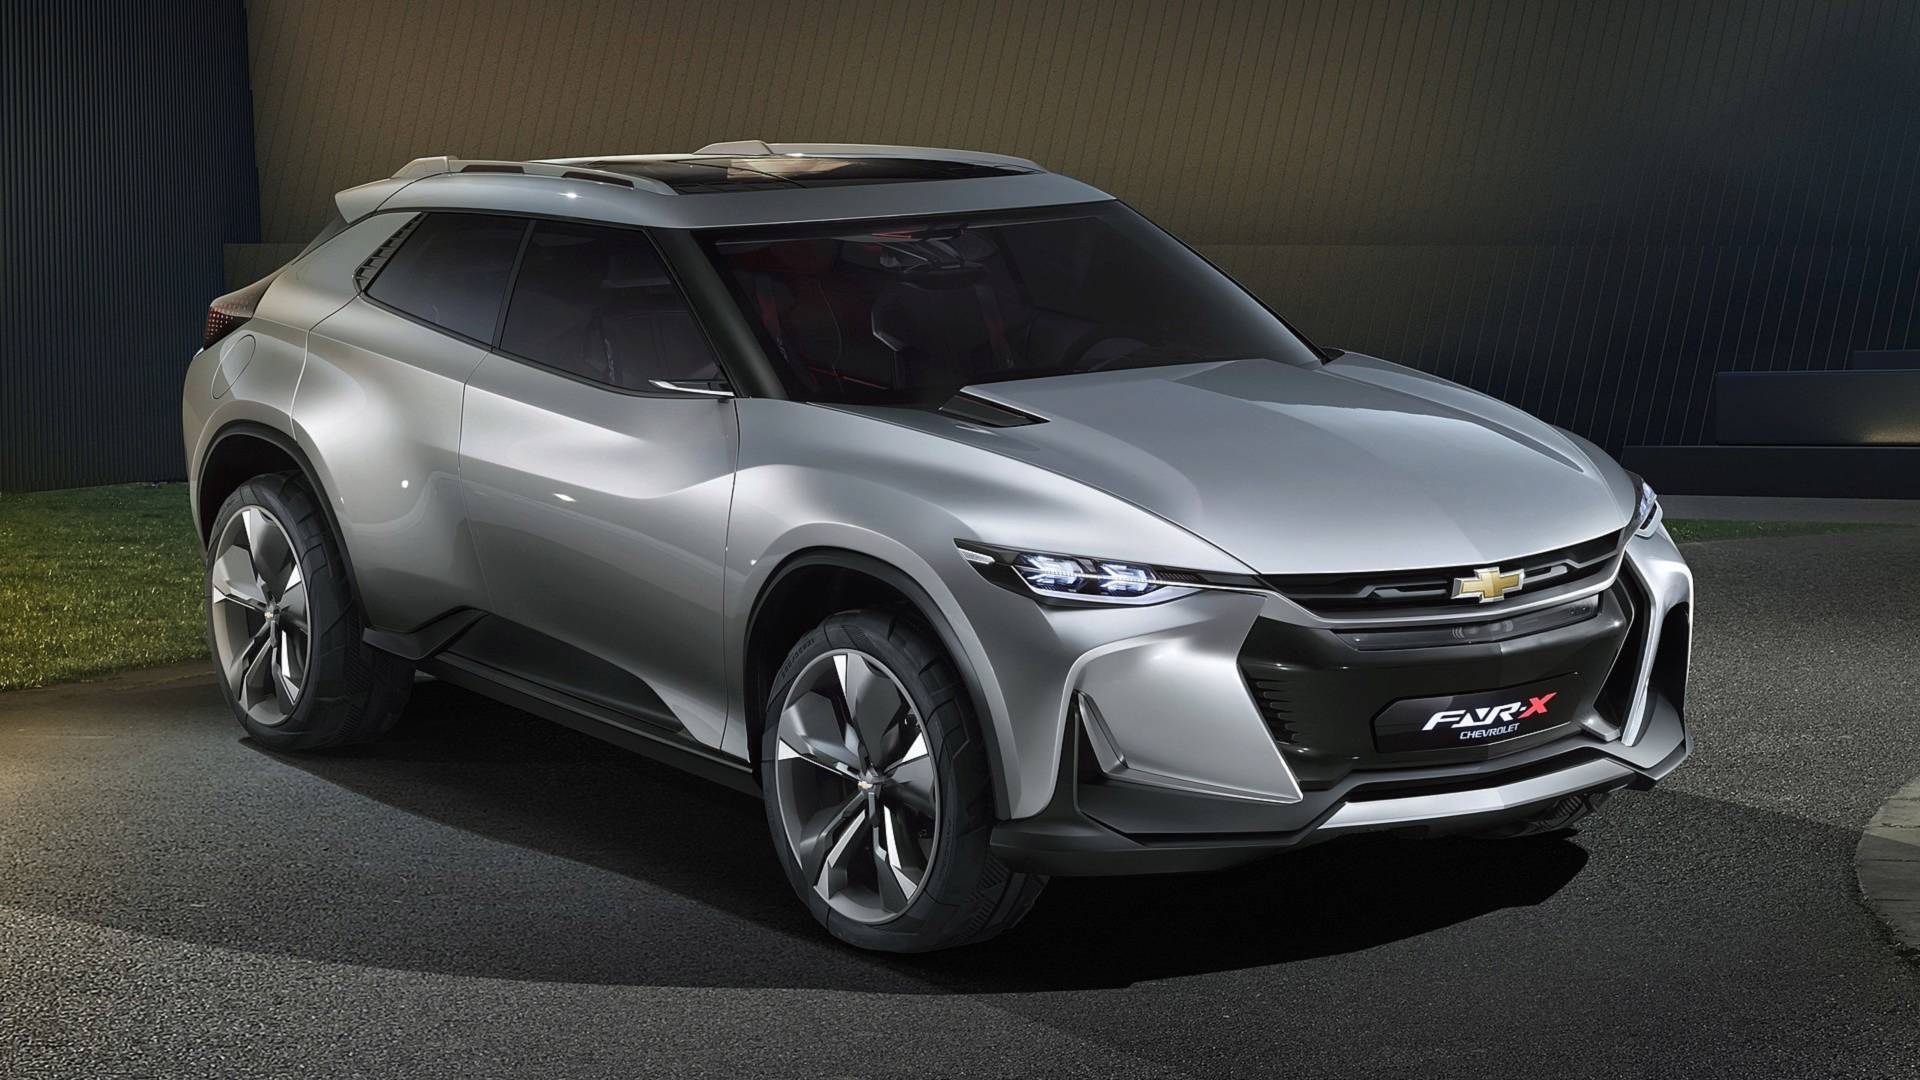 91 Great Toyota Upcoming Suv 2020 Wallpaper with Toyota Upcoming Suv 2020